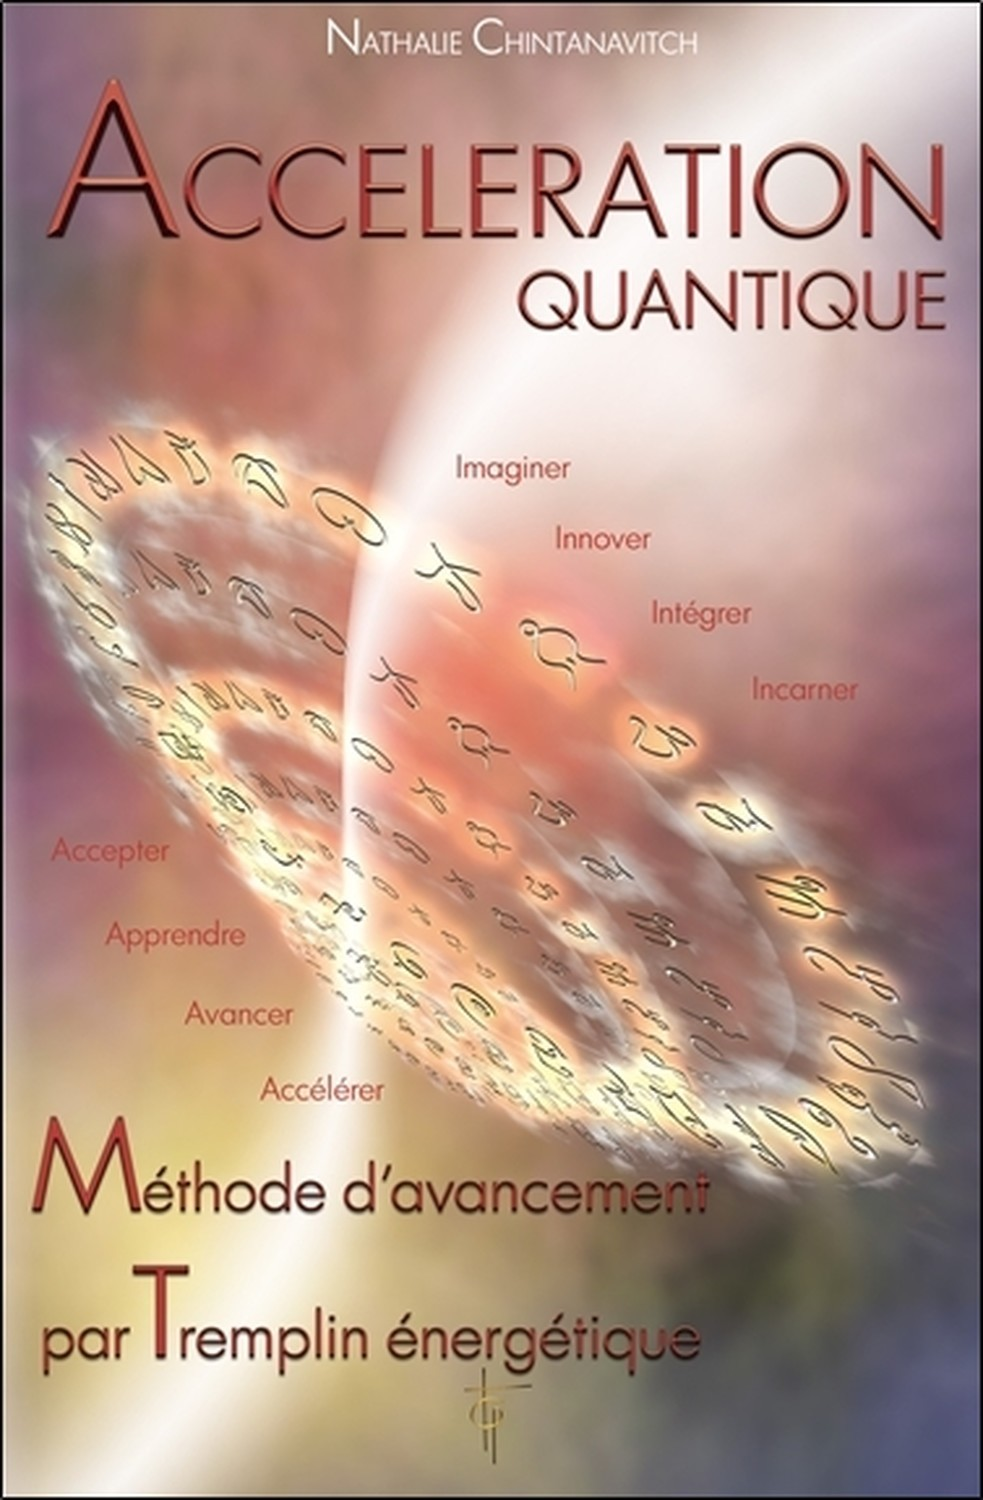 ACCELERATION QUANTIQUE - METHODE D'AVANCEMENT PAR TREMPLIN ENERGETIQUE